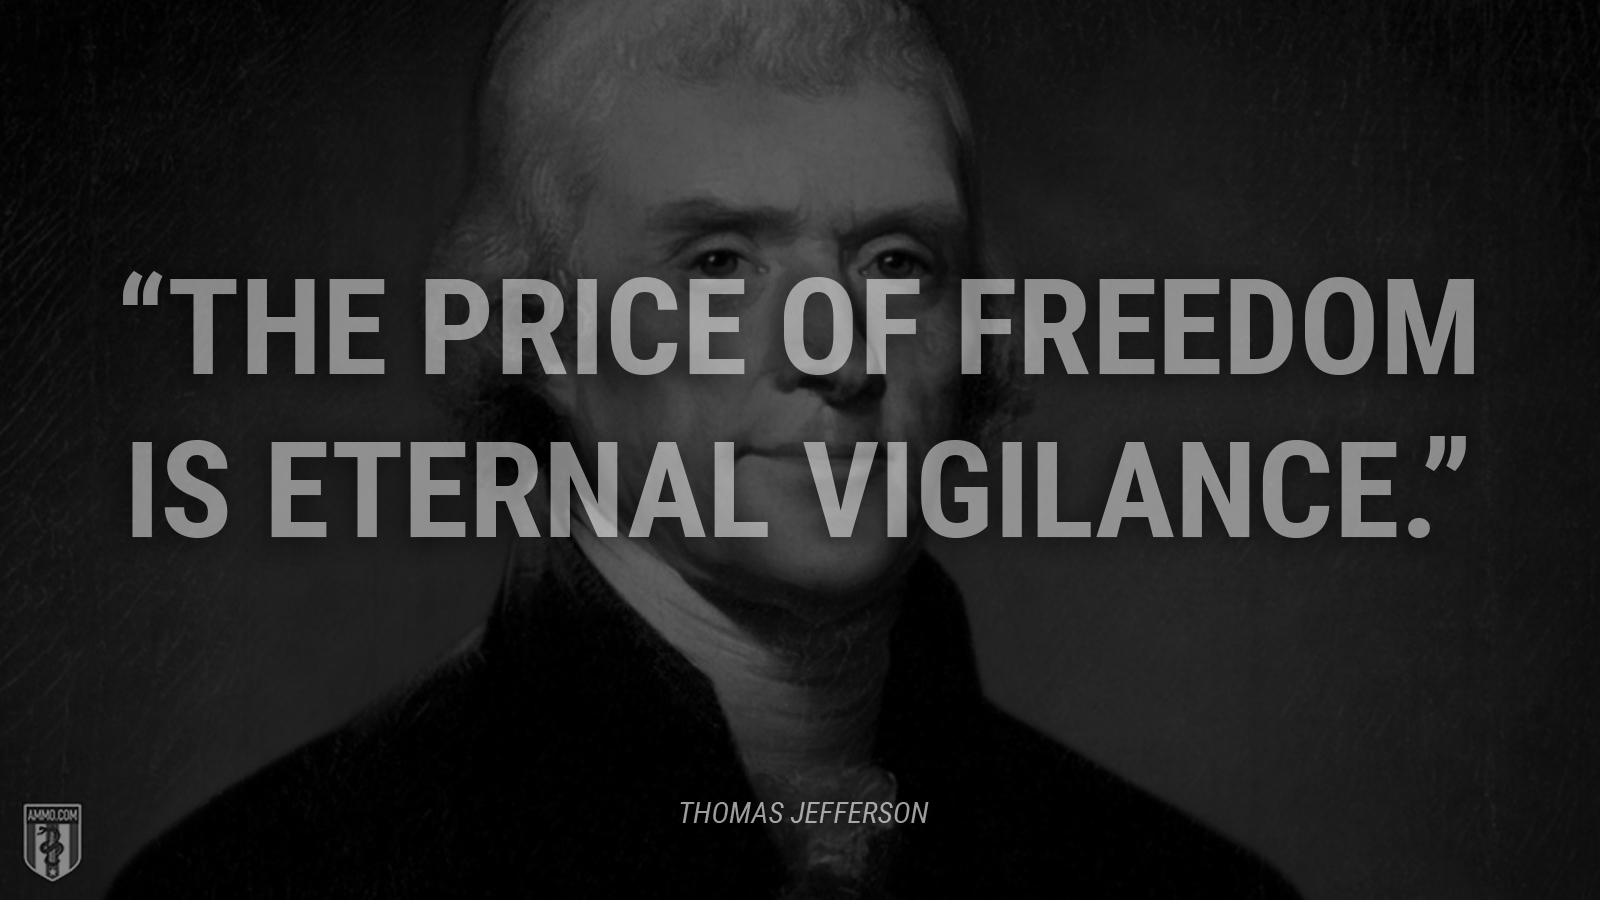 """The price of freedom is eternal vigilance."" - Thomas Jefferson"